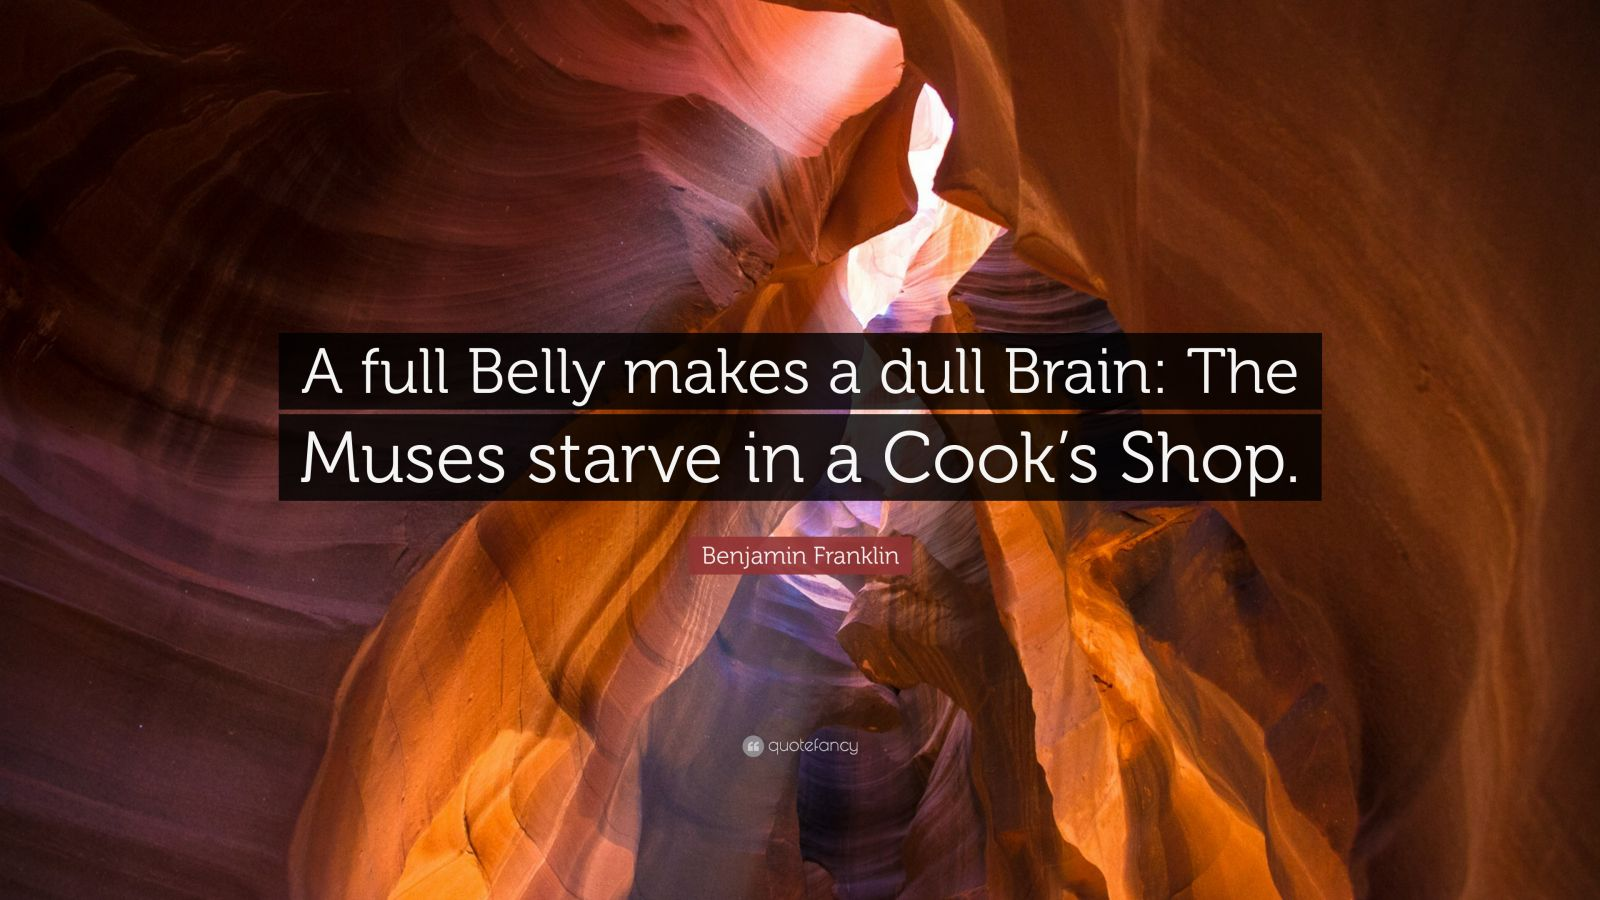 """Benjamin Franklin Quote: """"A full Belly makes a dull Brain: The Muses starve in a Cook's Shop."""""""